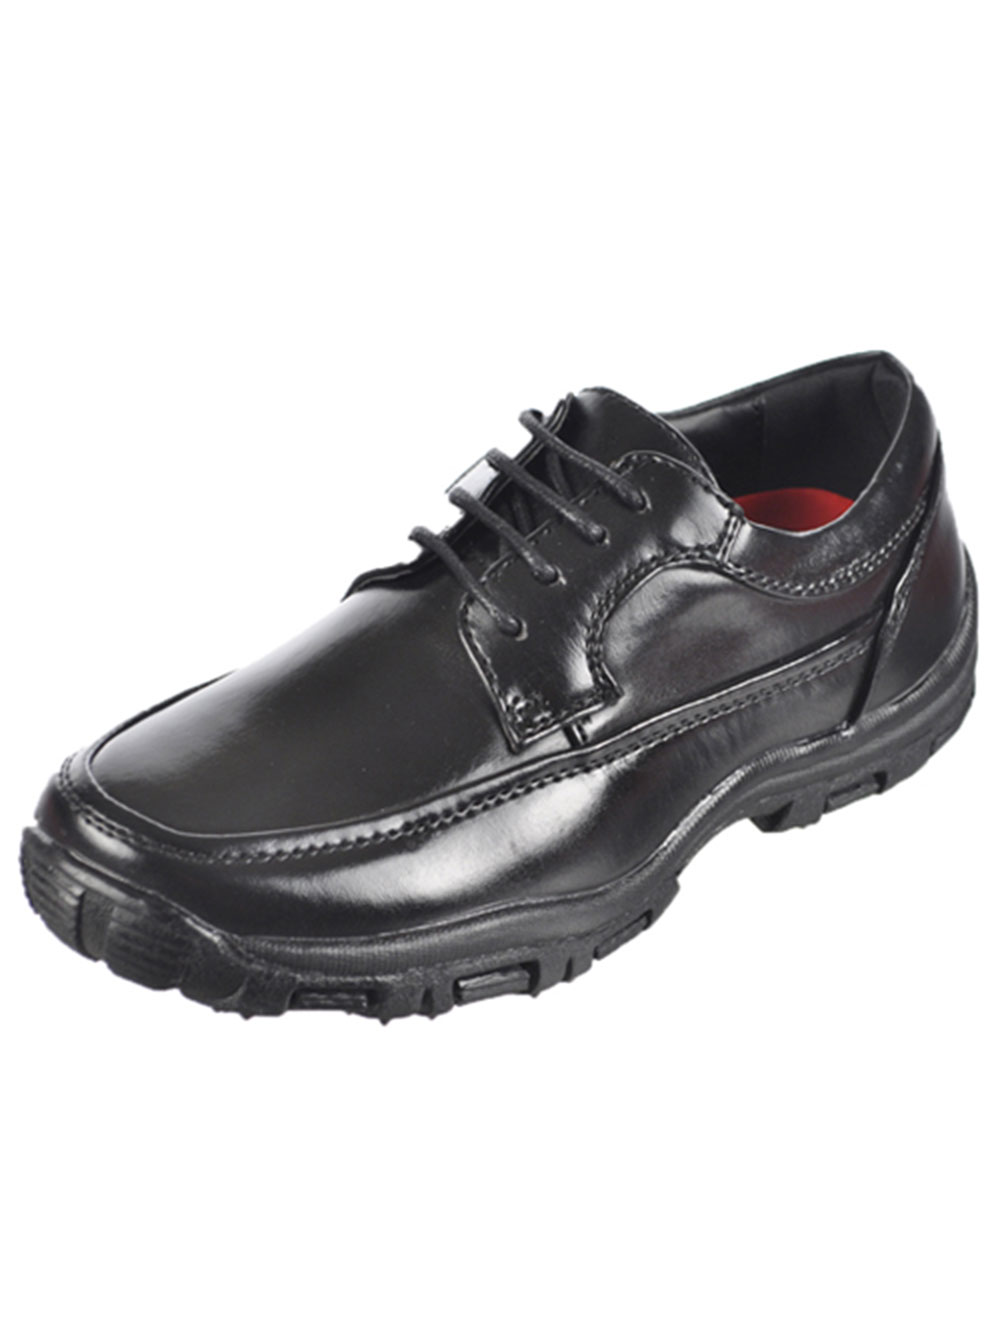 Image of Goodfellas Boys Dino Dress Shoes Youth Sizes 4  8  black 4 youth